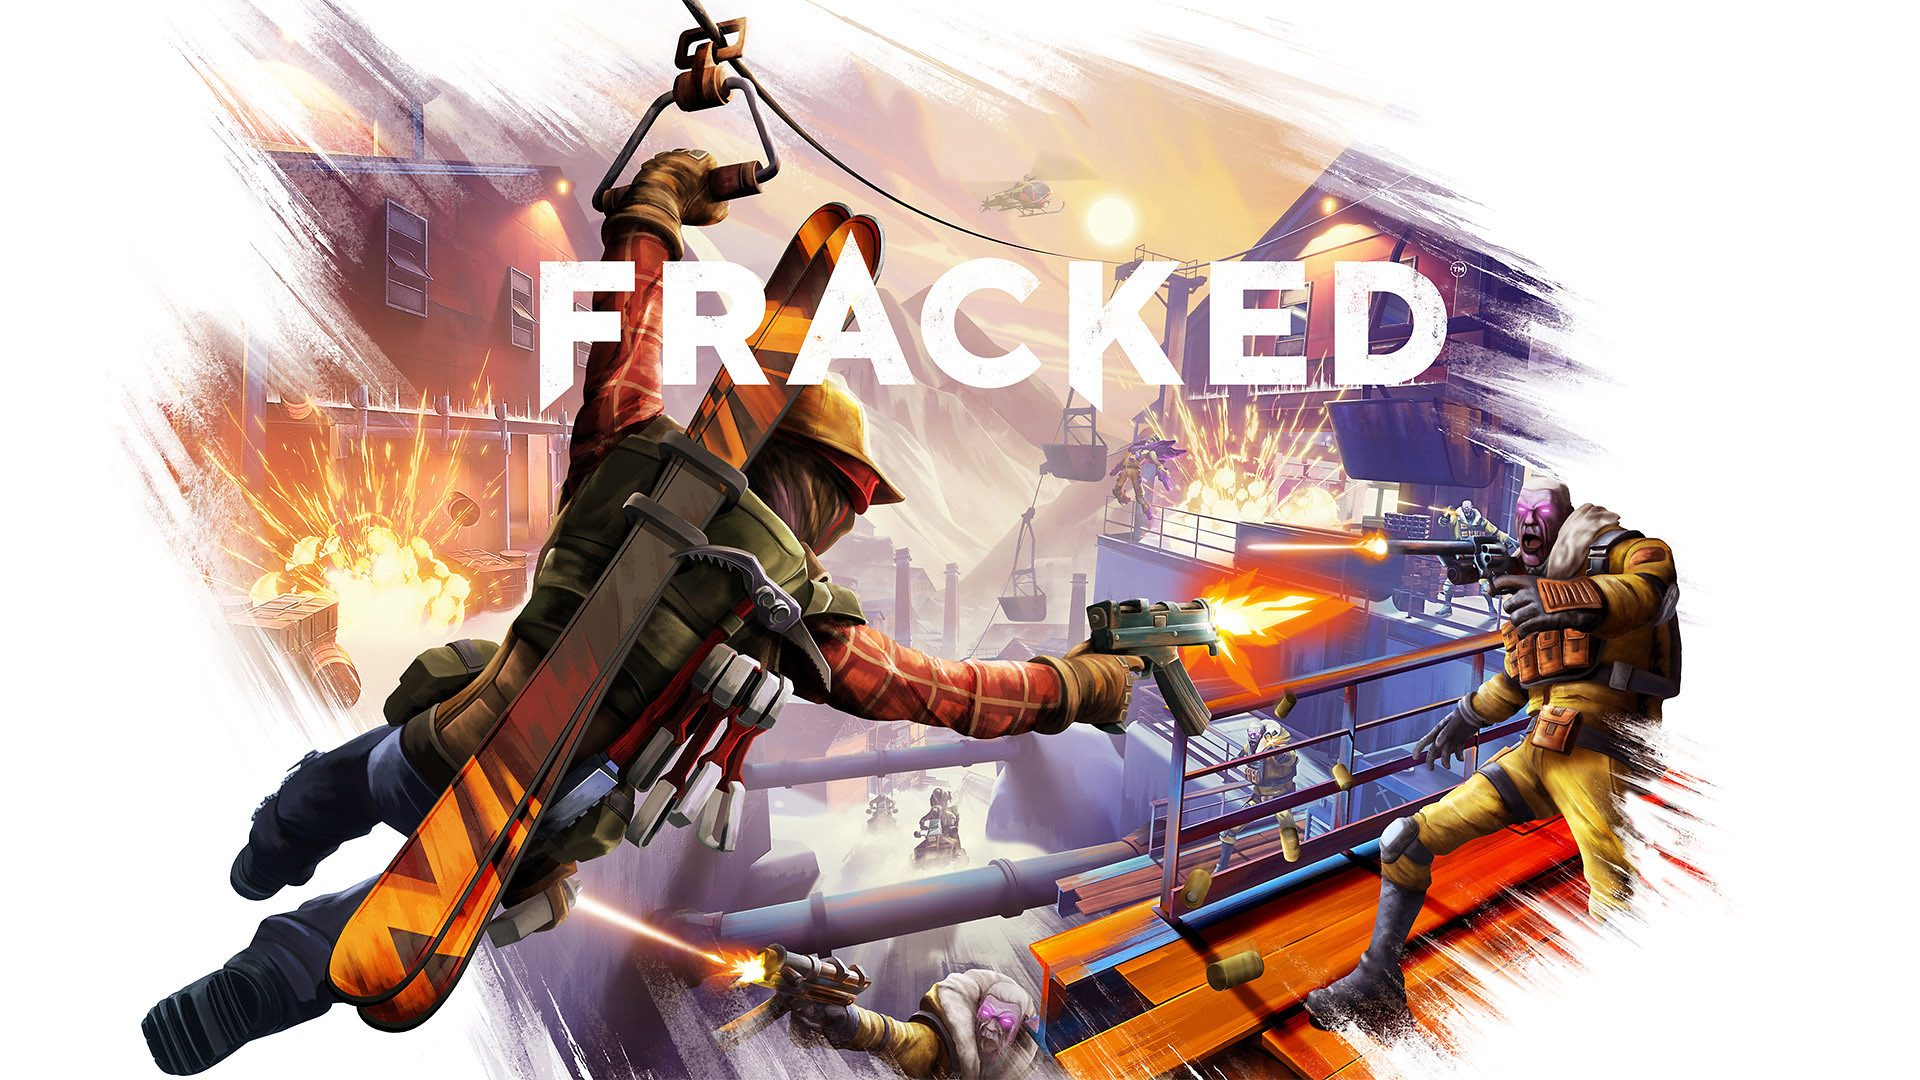 fracked-gameplay-recommendations-for-saving-the-earth